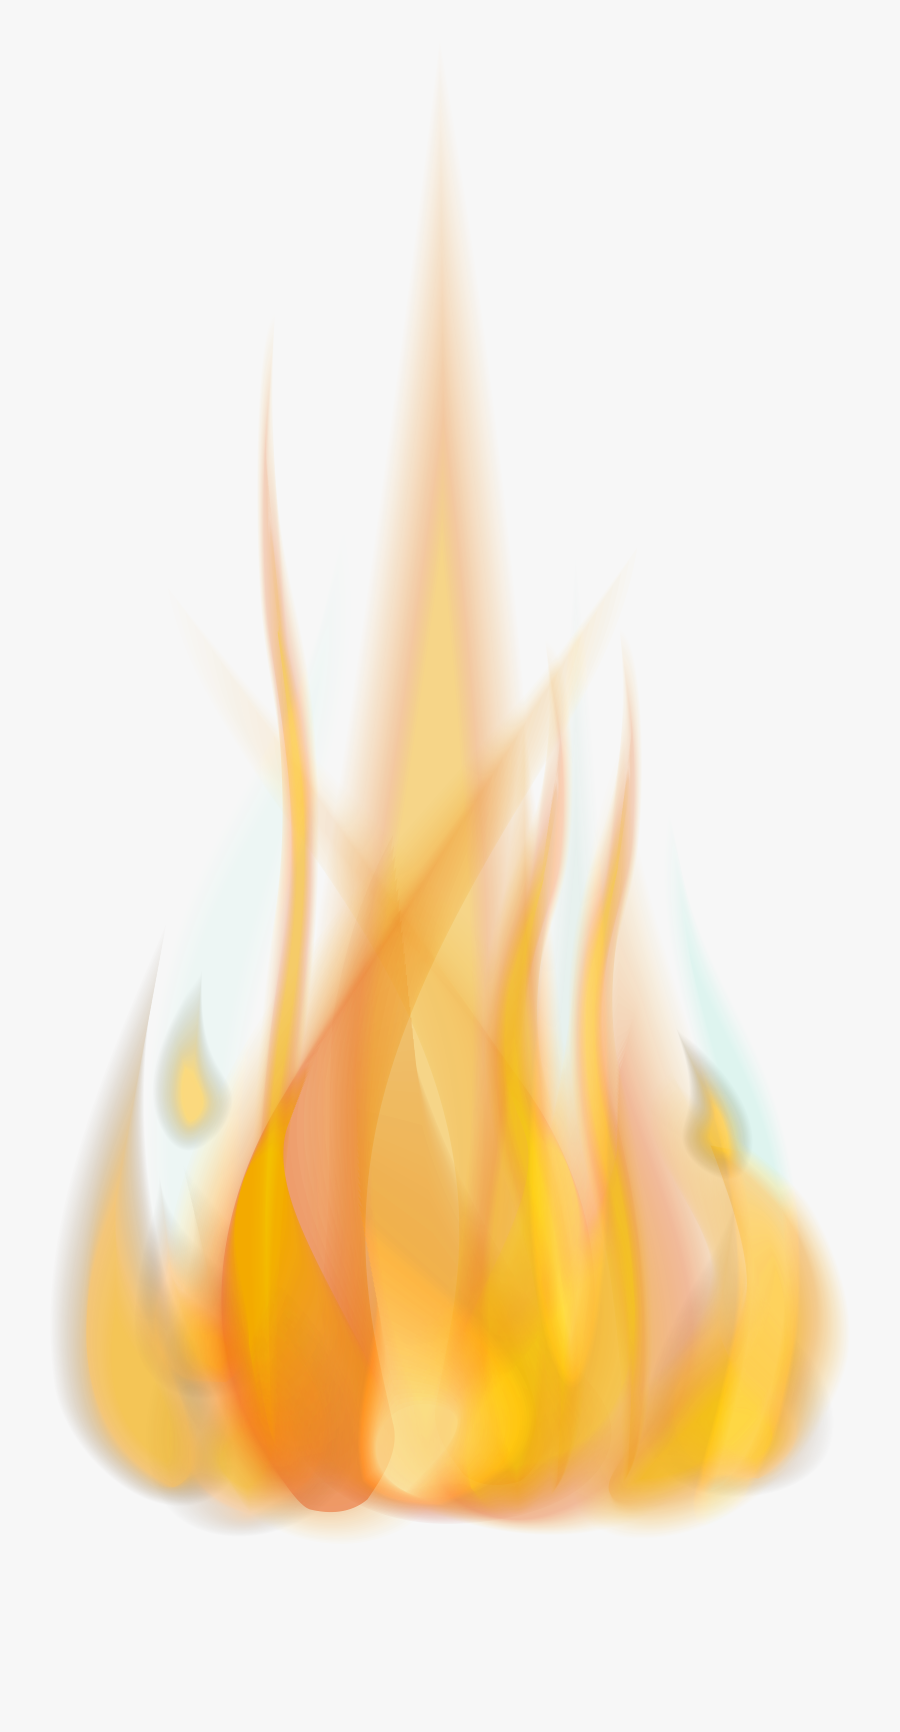 Clipart Fire At Getdrawings - Png Format Fire Flame Png, Transparent Clipart